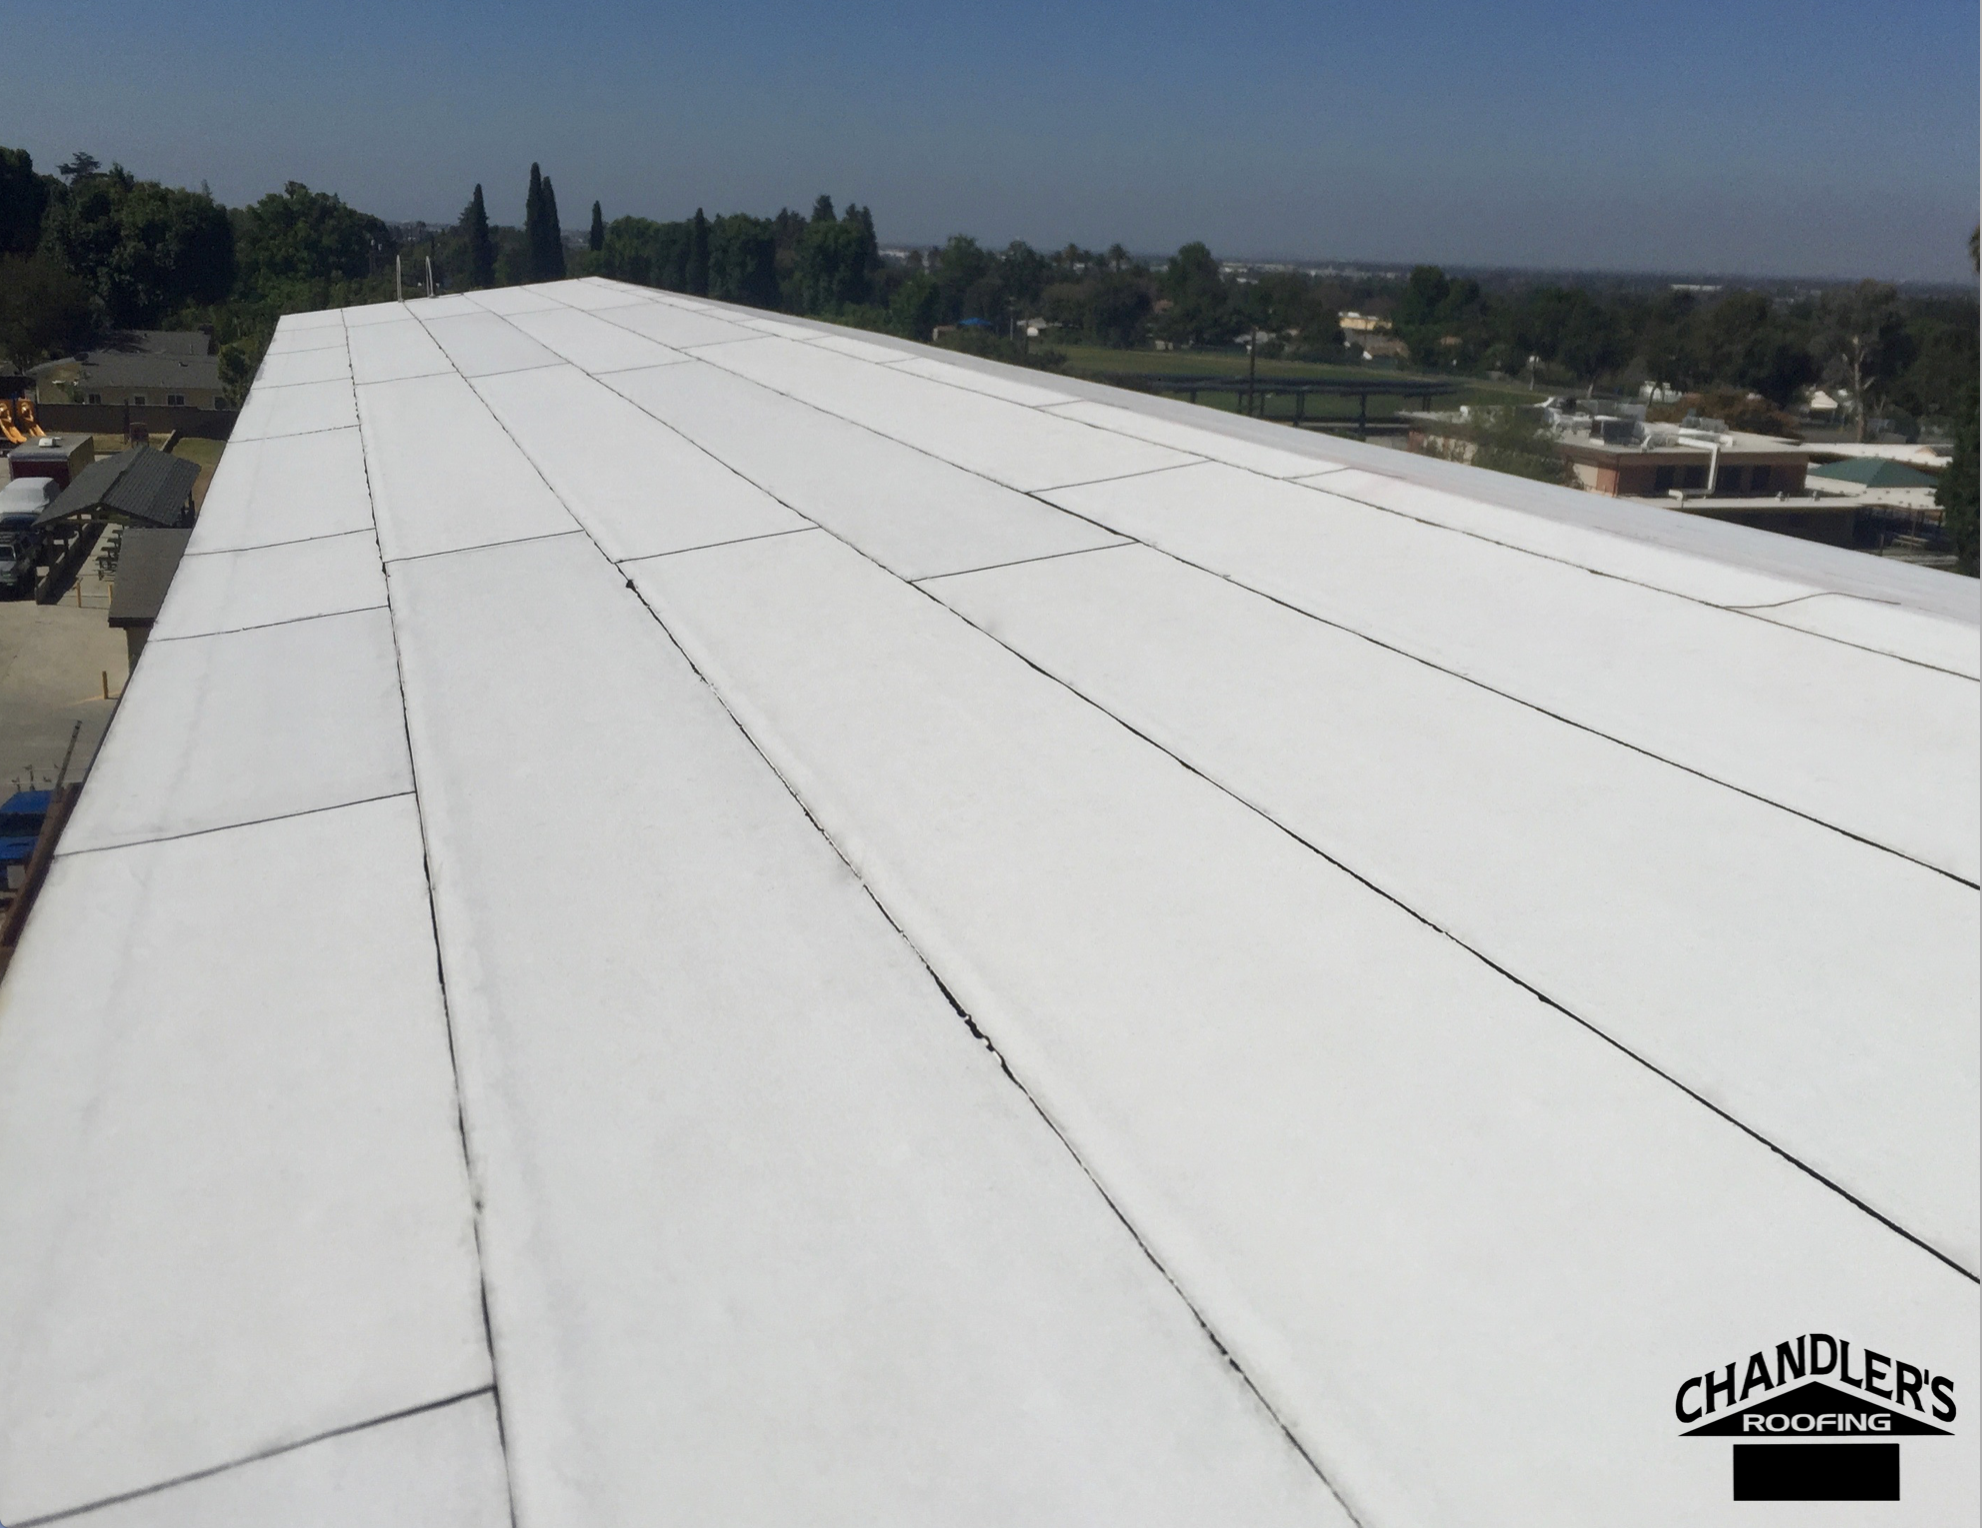 Www Chandlersroofing Com Ruberoid Energycap Torch Granule Fr Modified Bitumen Gaf Roof Installed In Whi Roof Installation Commercial Roofing Roofing Systems